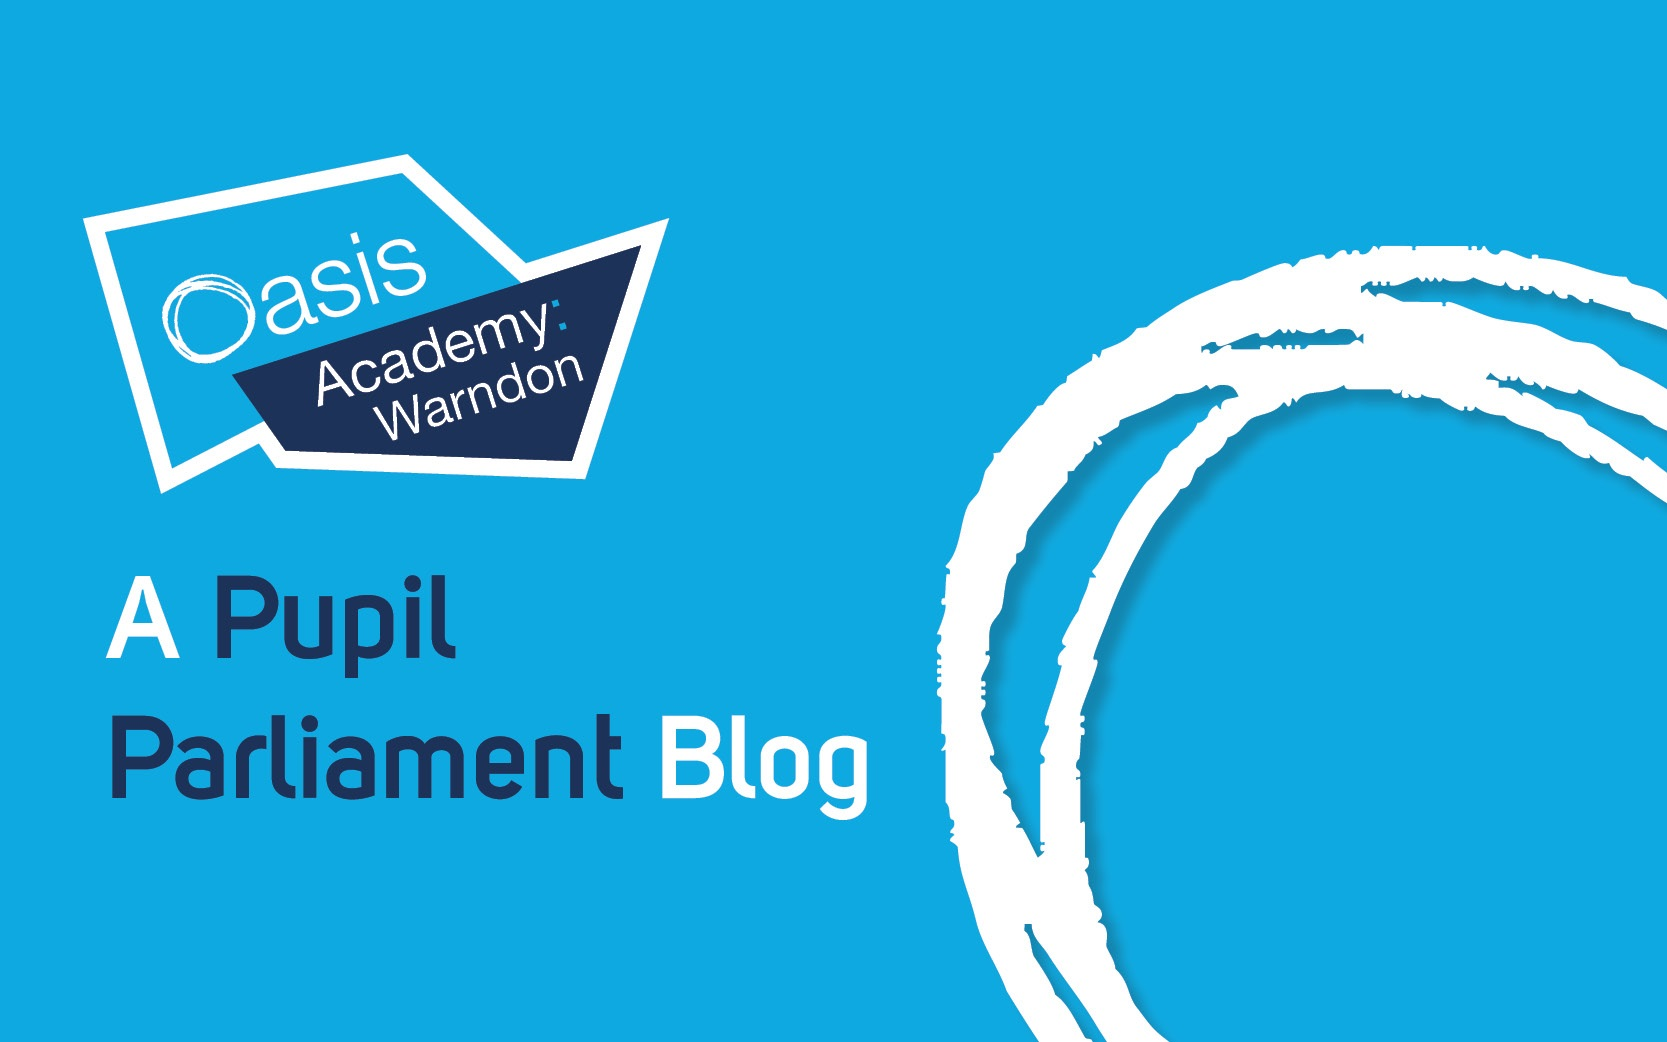 New Pupil Parliament Blog Now Live!